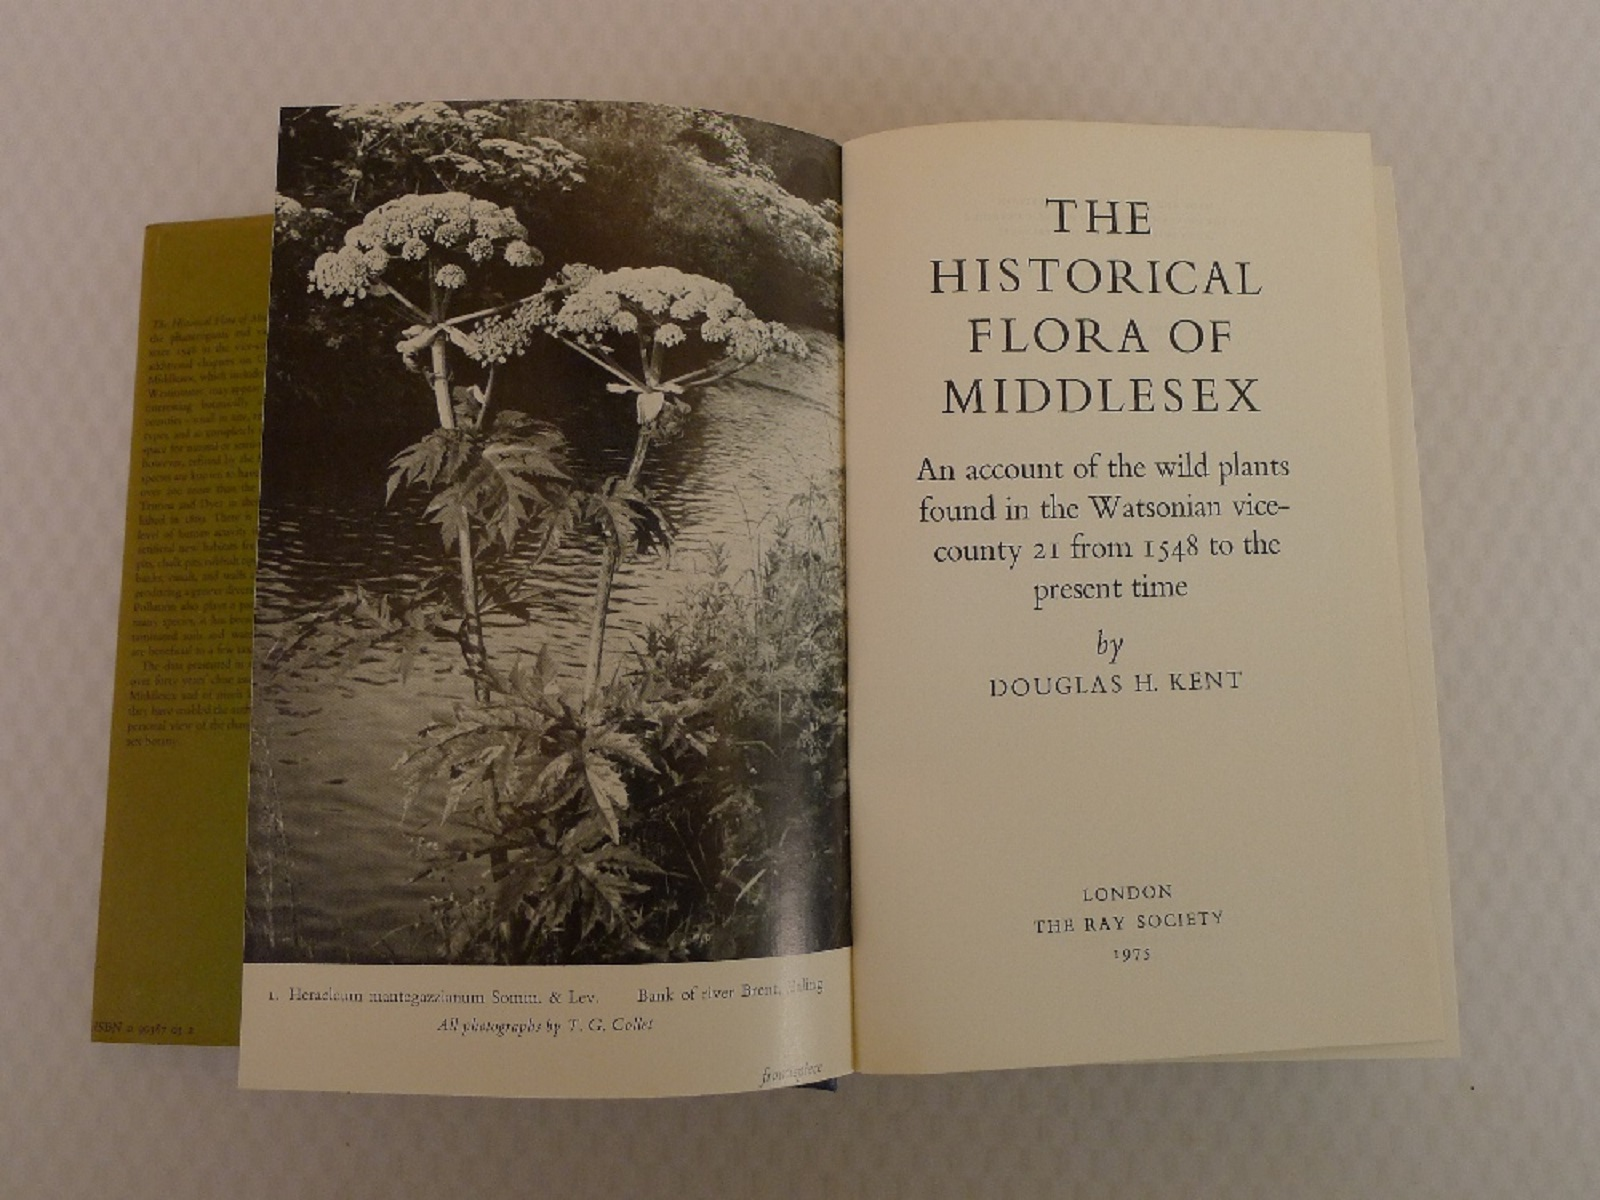 The Historical Flora of Middlesex An Account of the Wild Plants found in the Watsonian vice county - Image 6 of 6